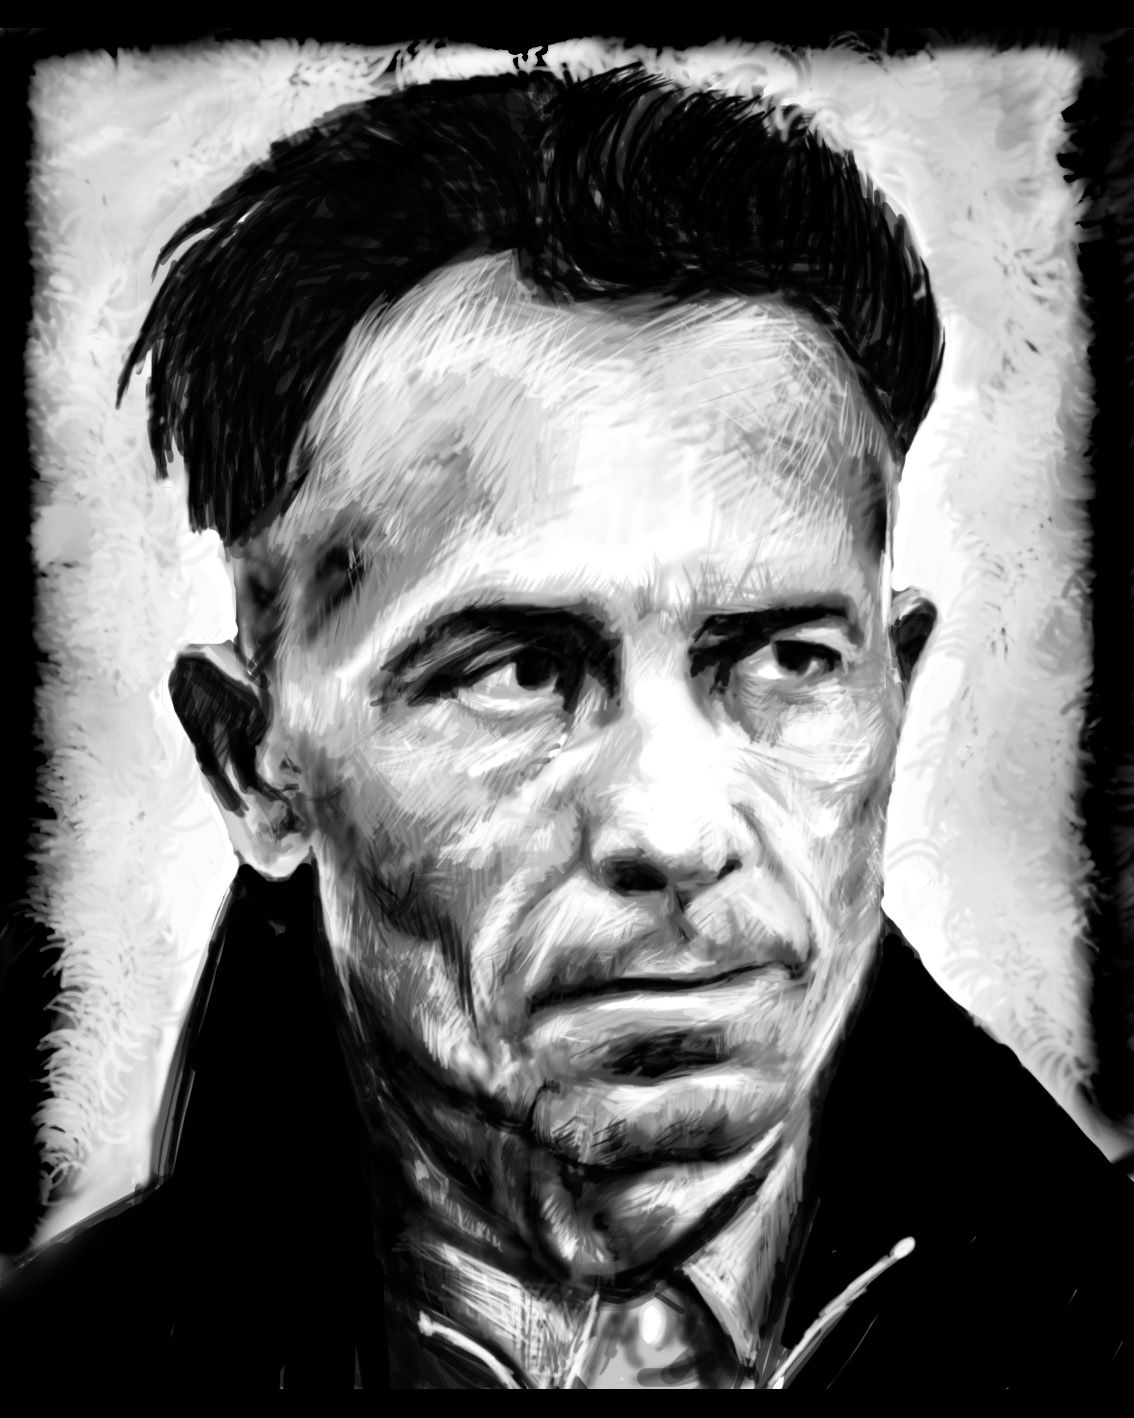 a biography of edward theodore gein an american serial killer A biography of edward theodore gein also known as ed gein oklahoma enters the union on nov 16,  1984, madison, wisconsin), american serial killer.